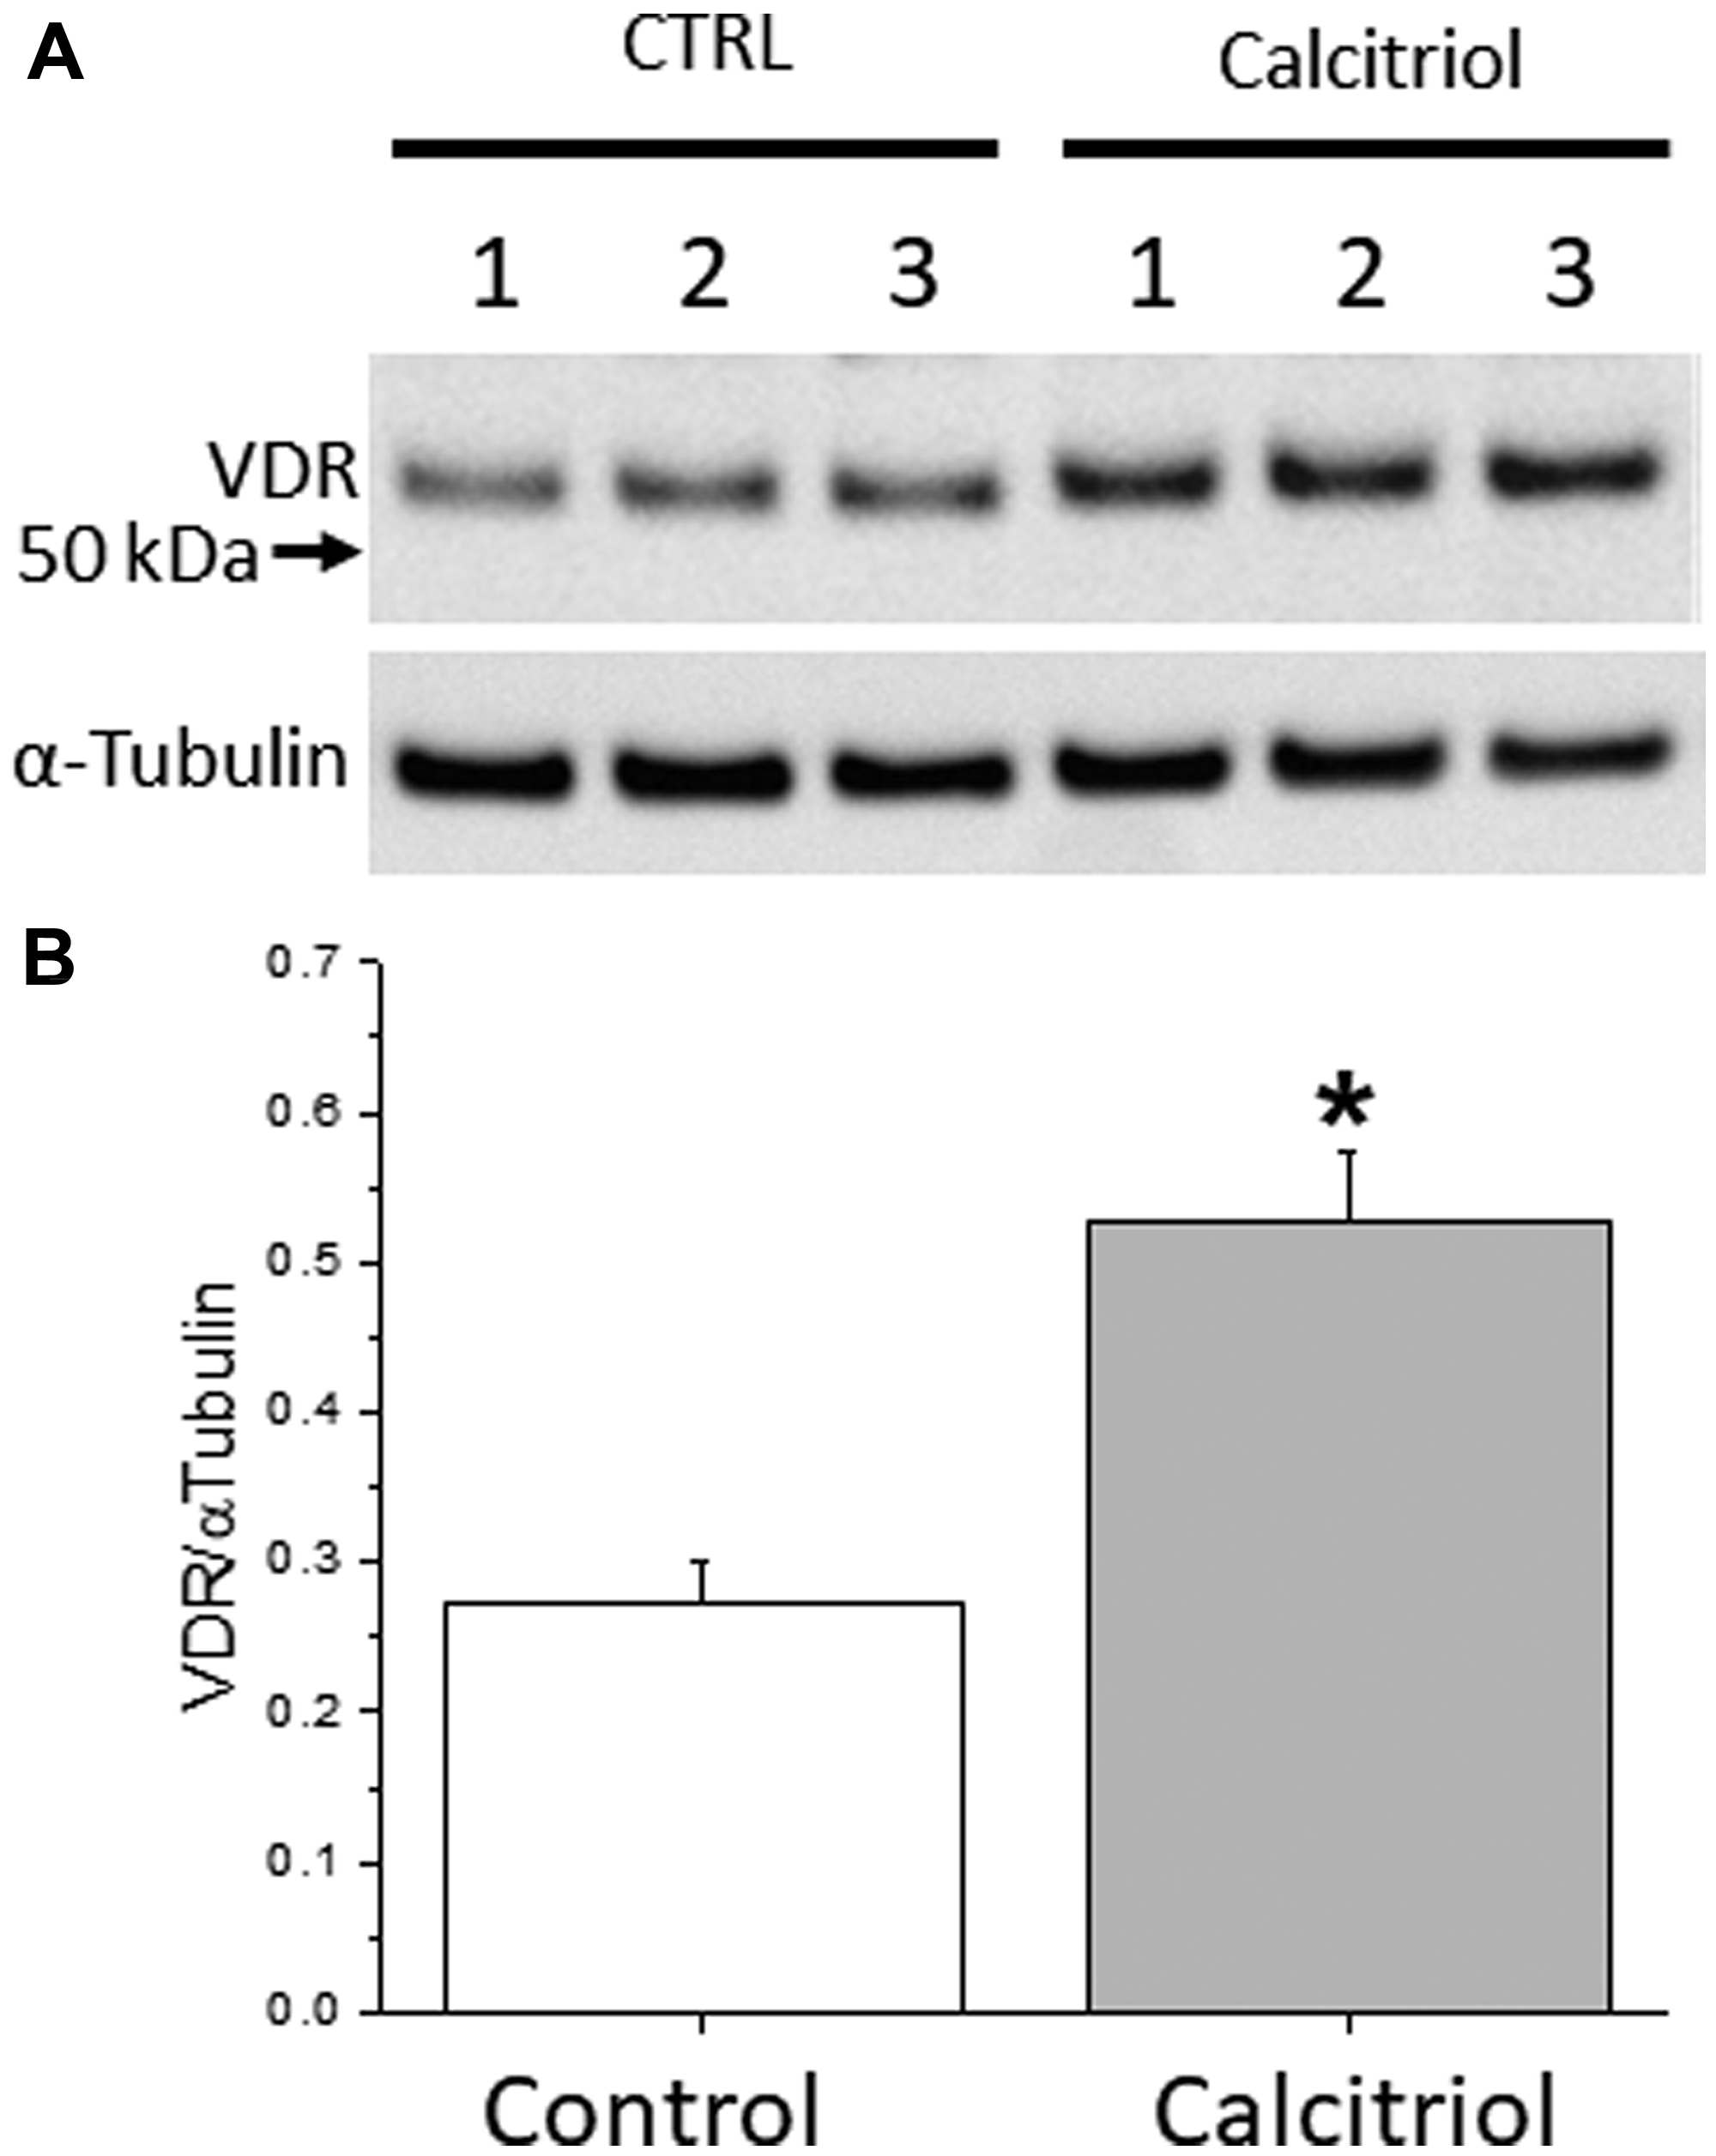 Vitamin D receptor (VDR) expression in cultured ovarian surface epithelial (OSE) cells.